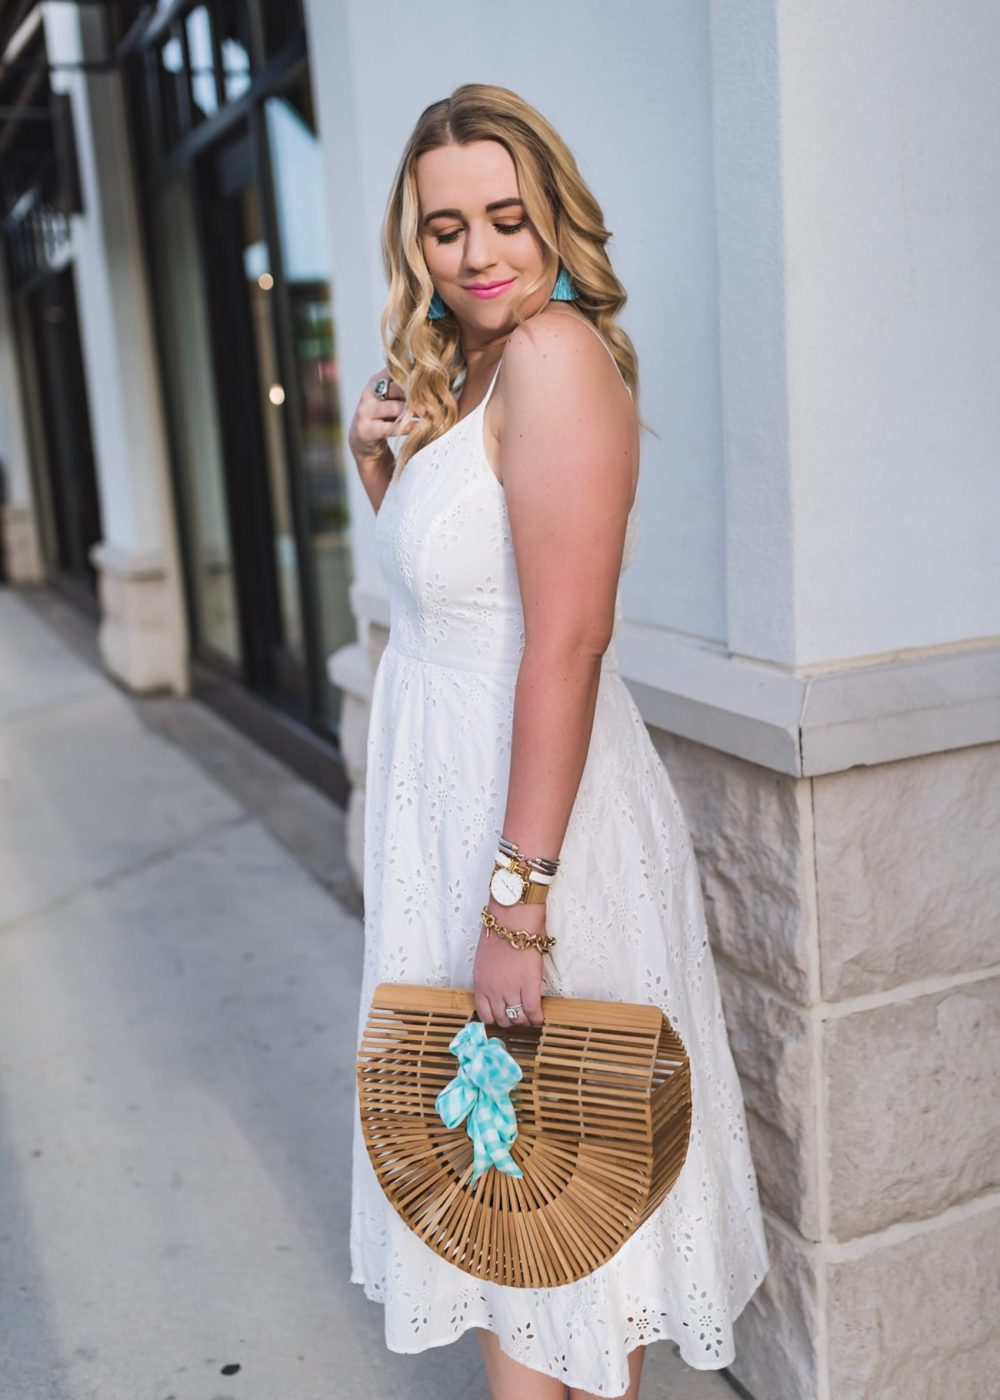 Cute White Eyelet Dress Under $50 from Old Navy Fancy Things